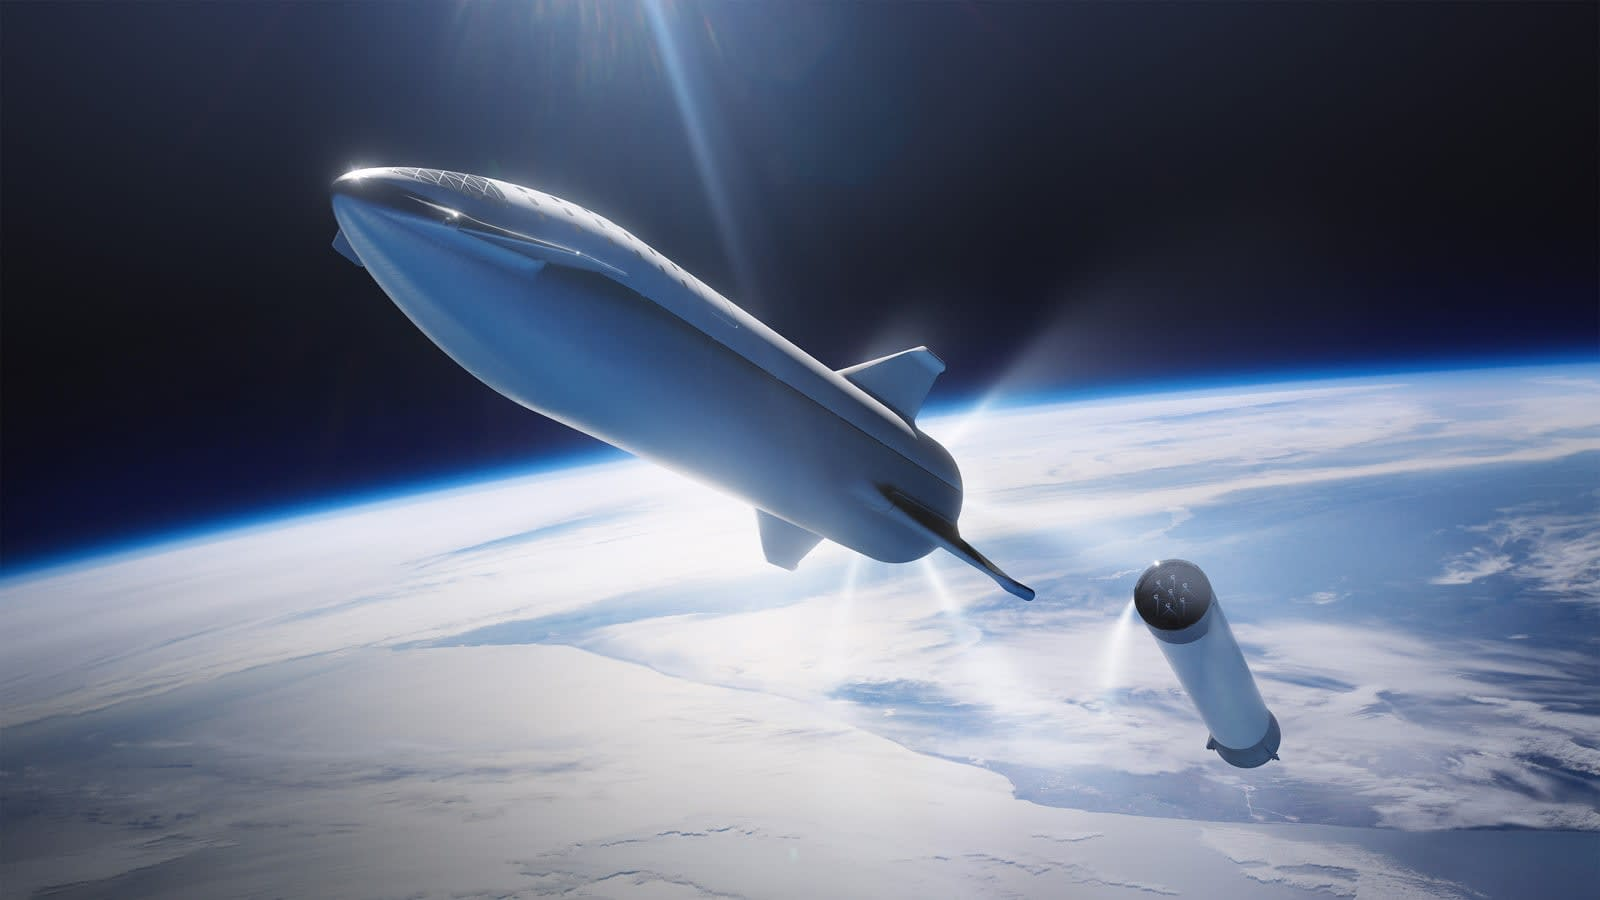 Spacex S Starship Test Vehicle Could Fly By April Engadget